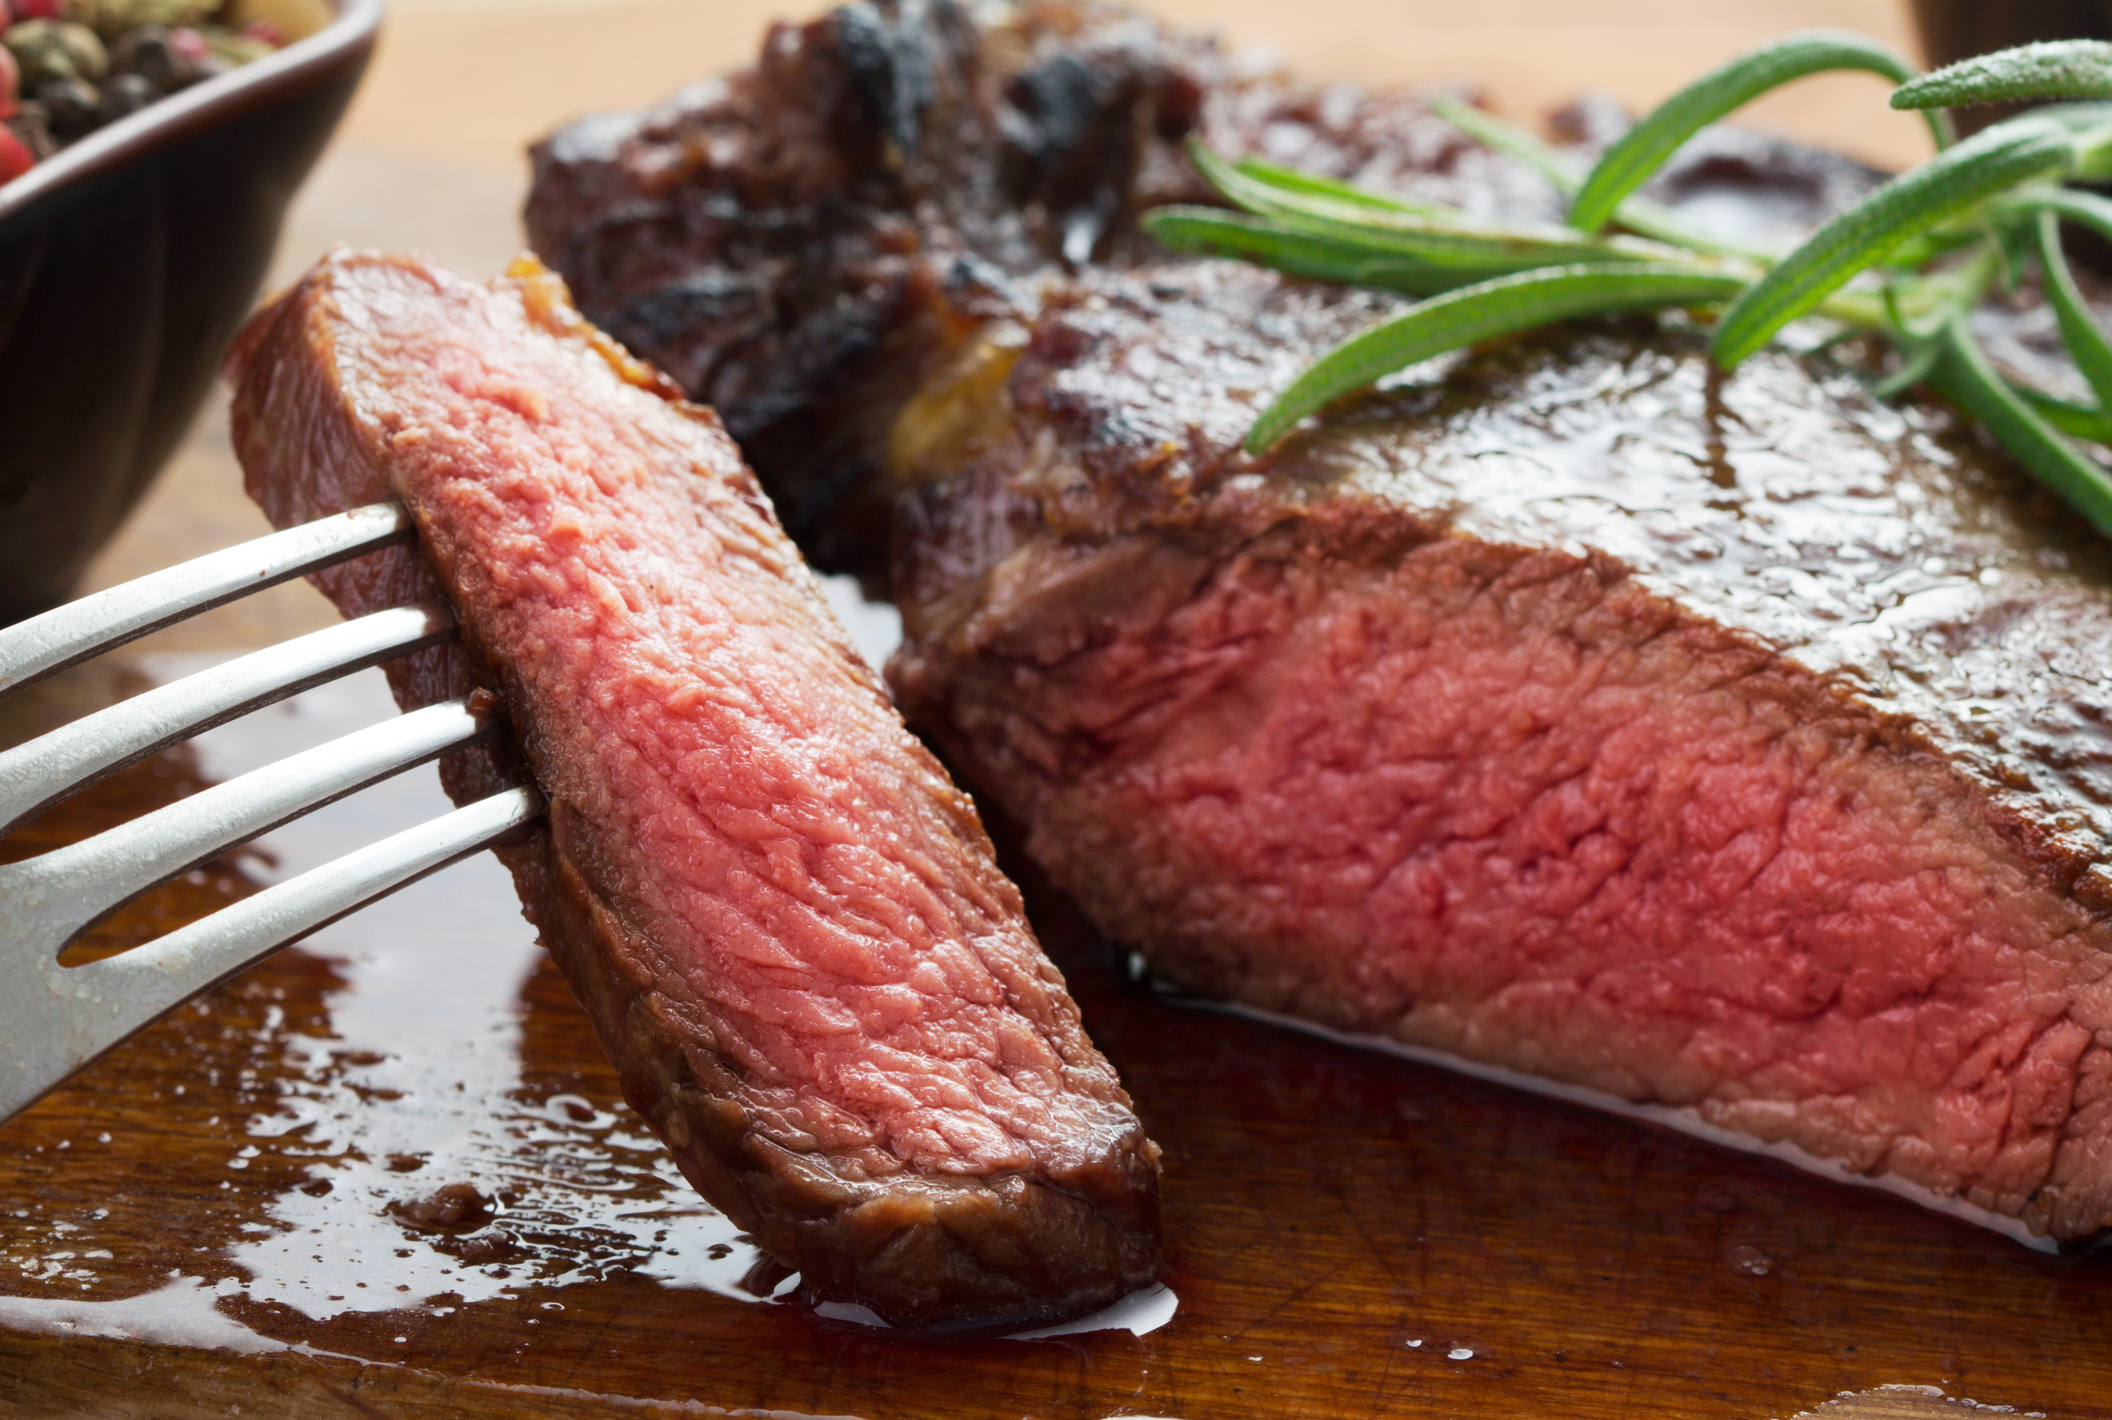 How Long Does It Take To Cook A Steak In The Oven Lovetoknow